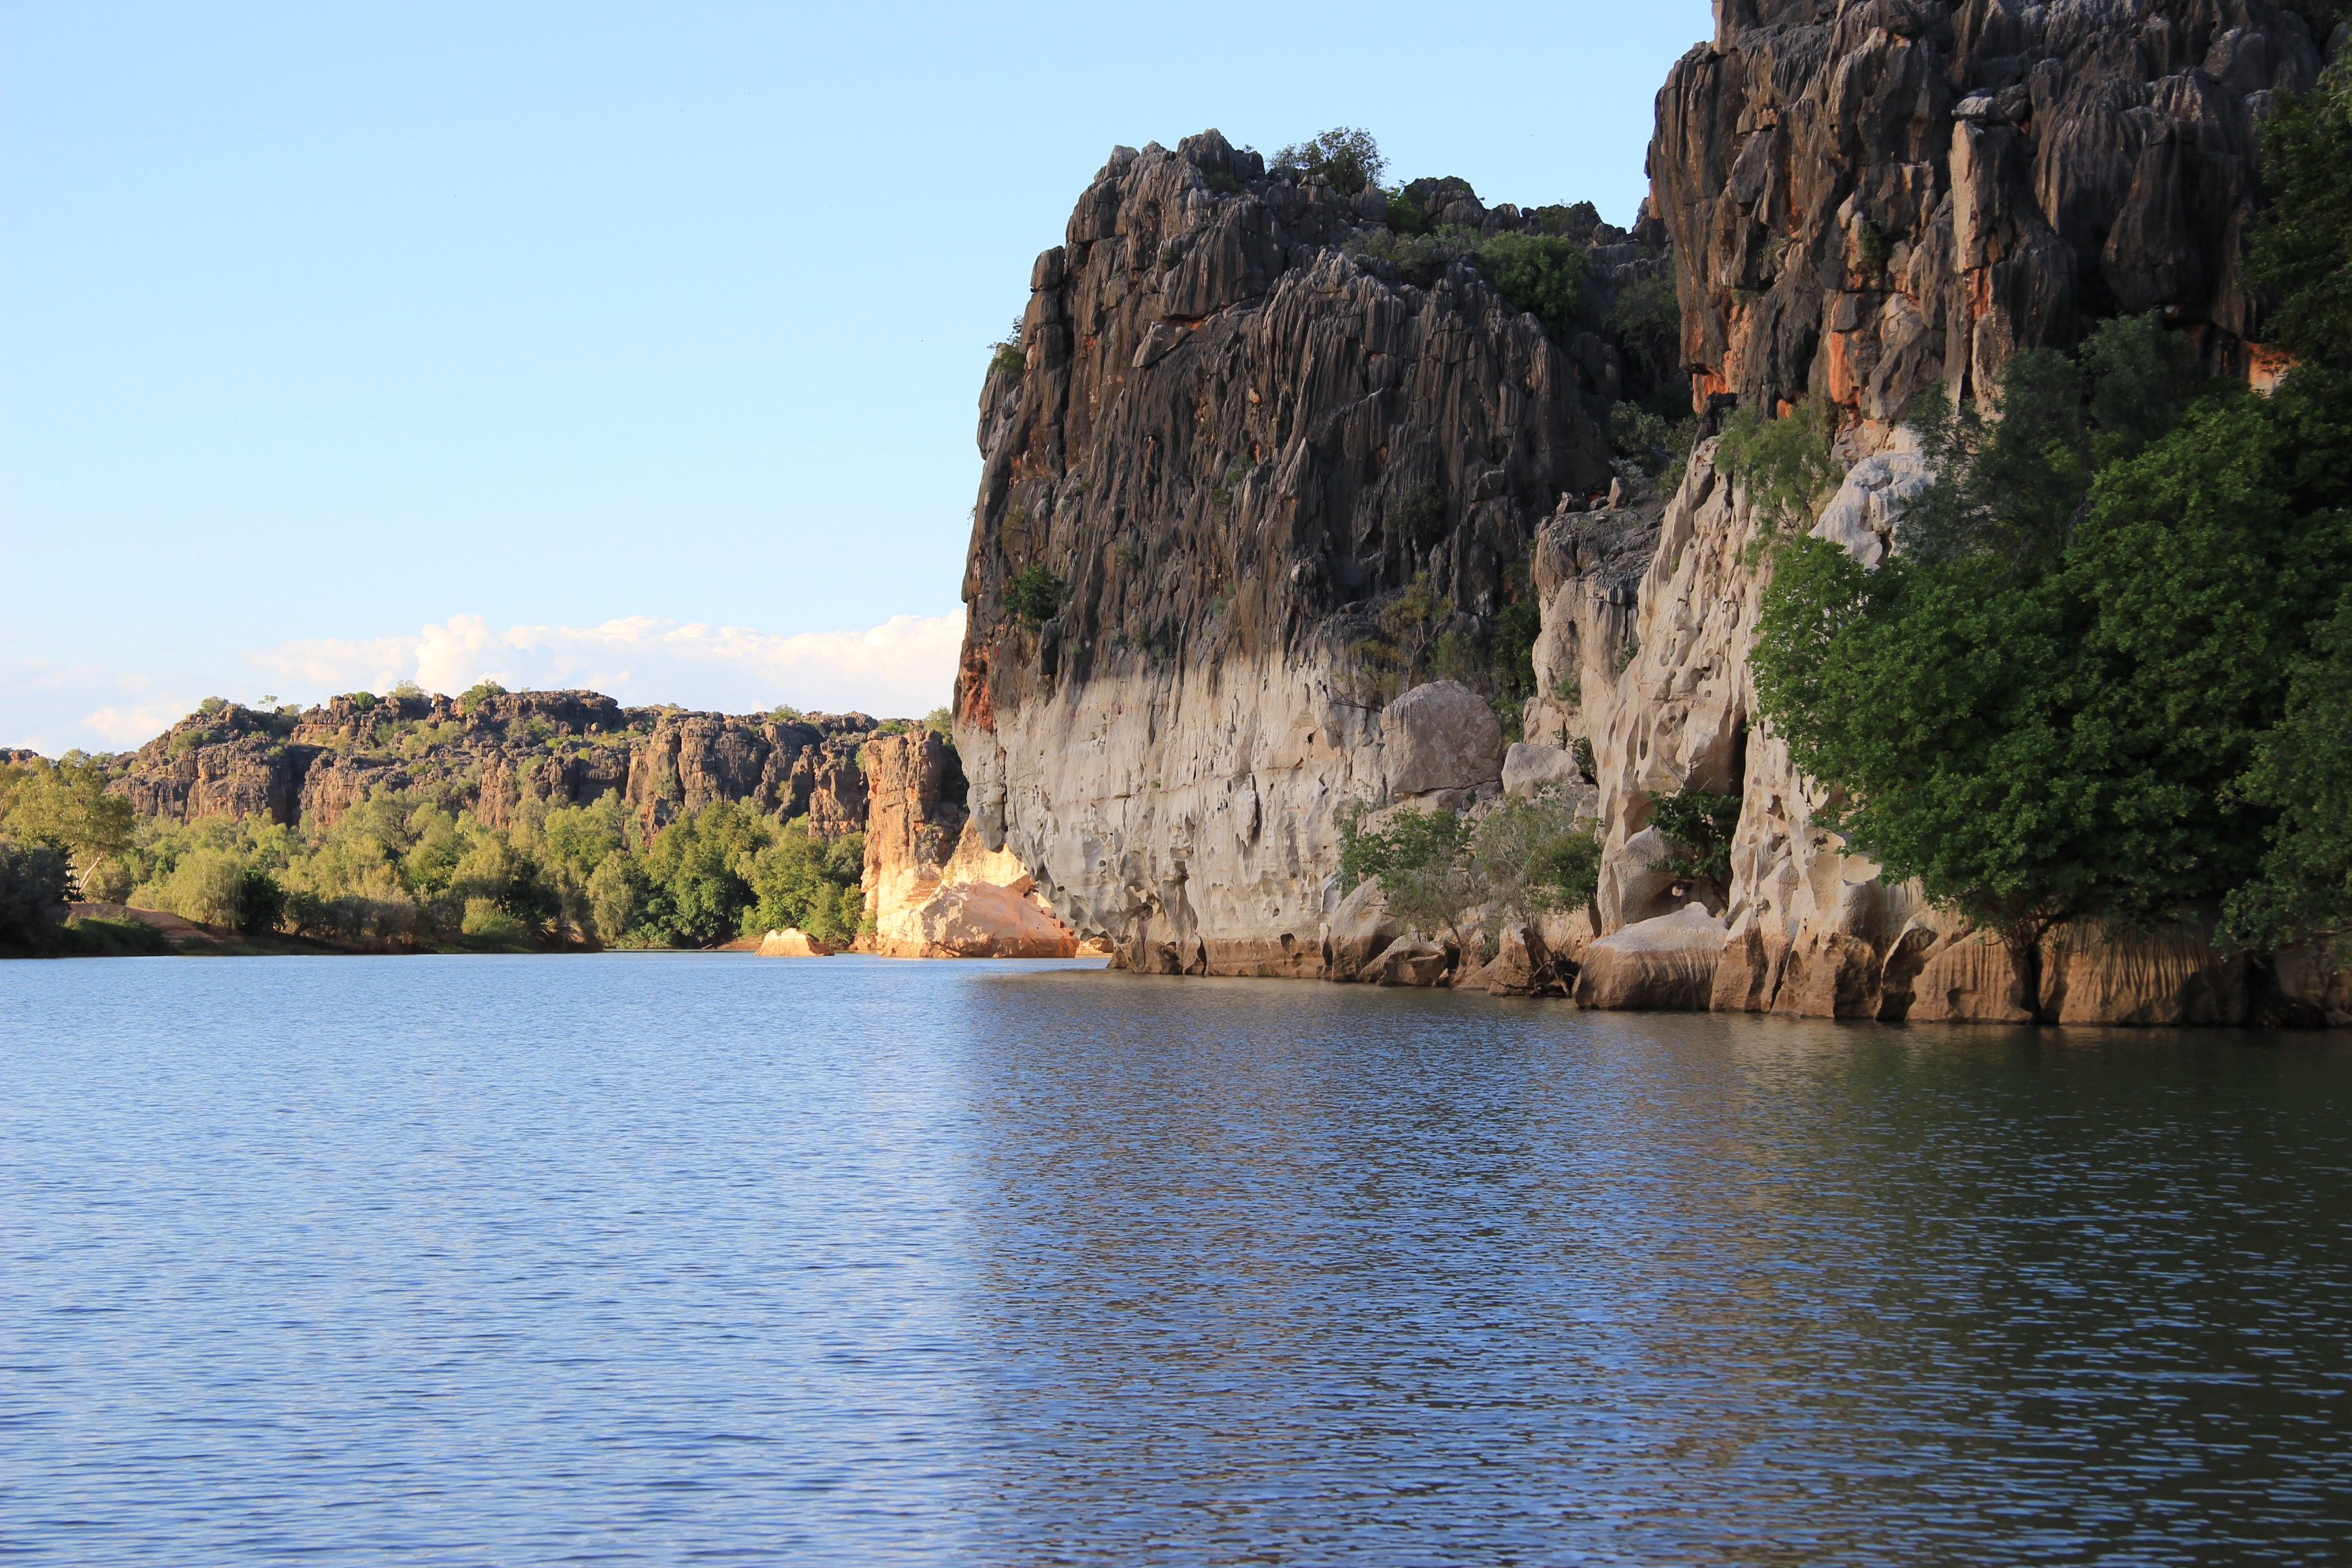 Geikie Gorge showing water in the foreground and steep cliffs bordering the gorge to the right in the background.